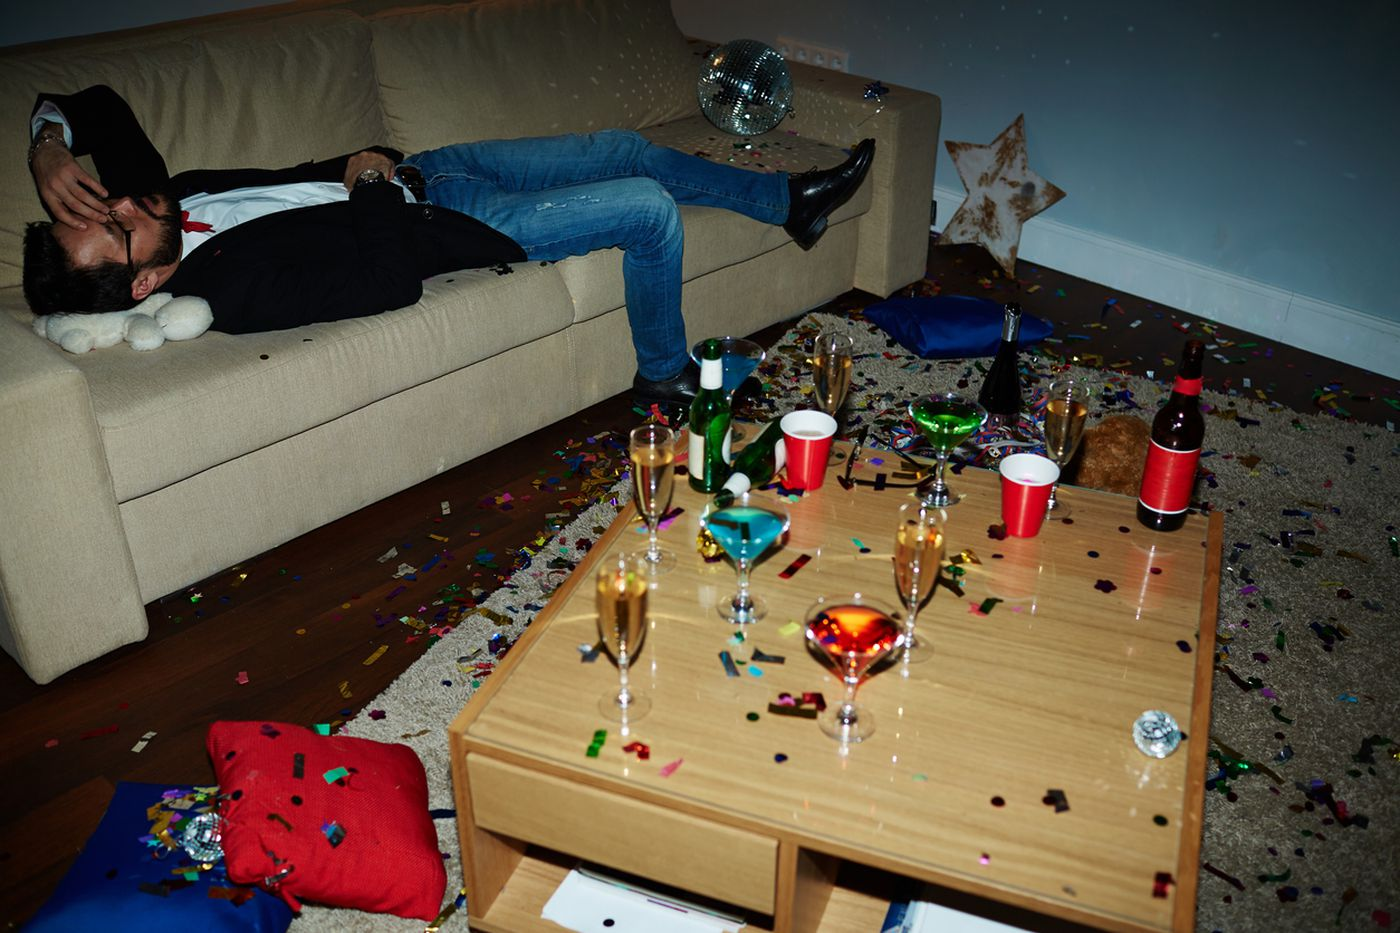 Is blackout drinking the same as passing out from alcohol? A Penn psychologist explains.